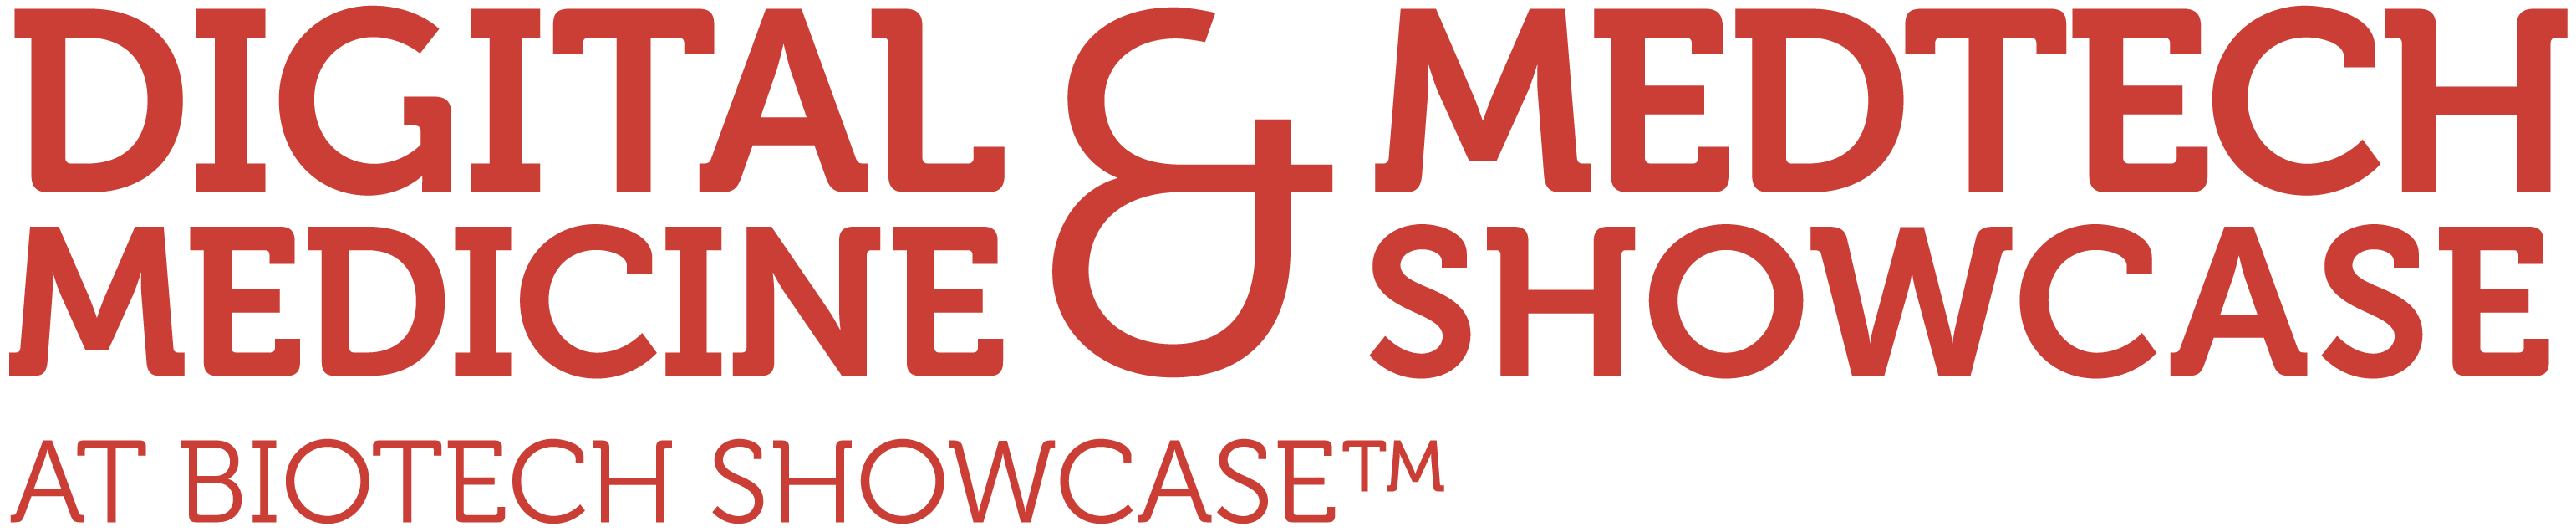 Digital medicine medtech showcase logo